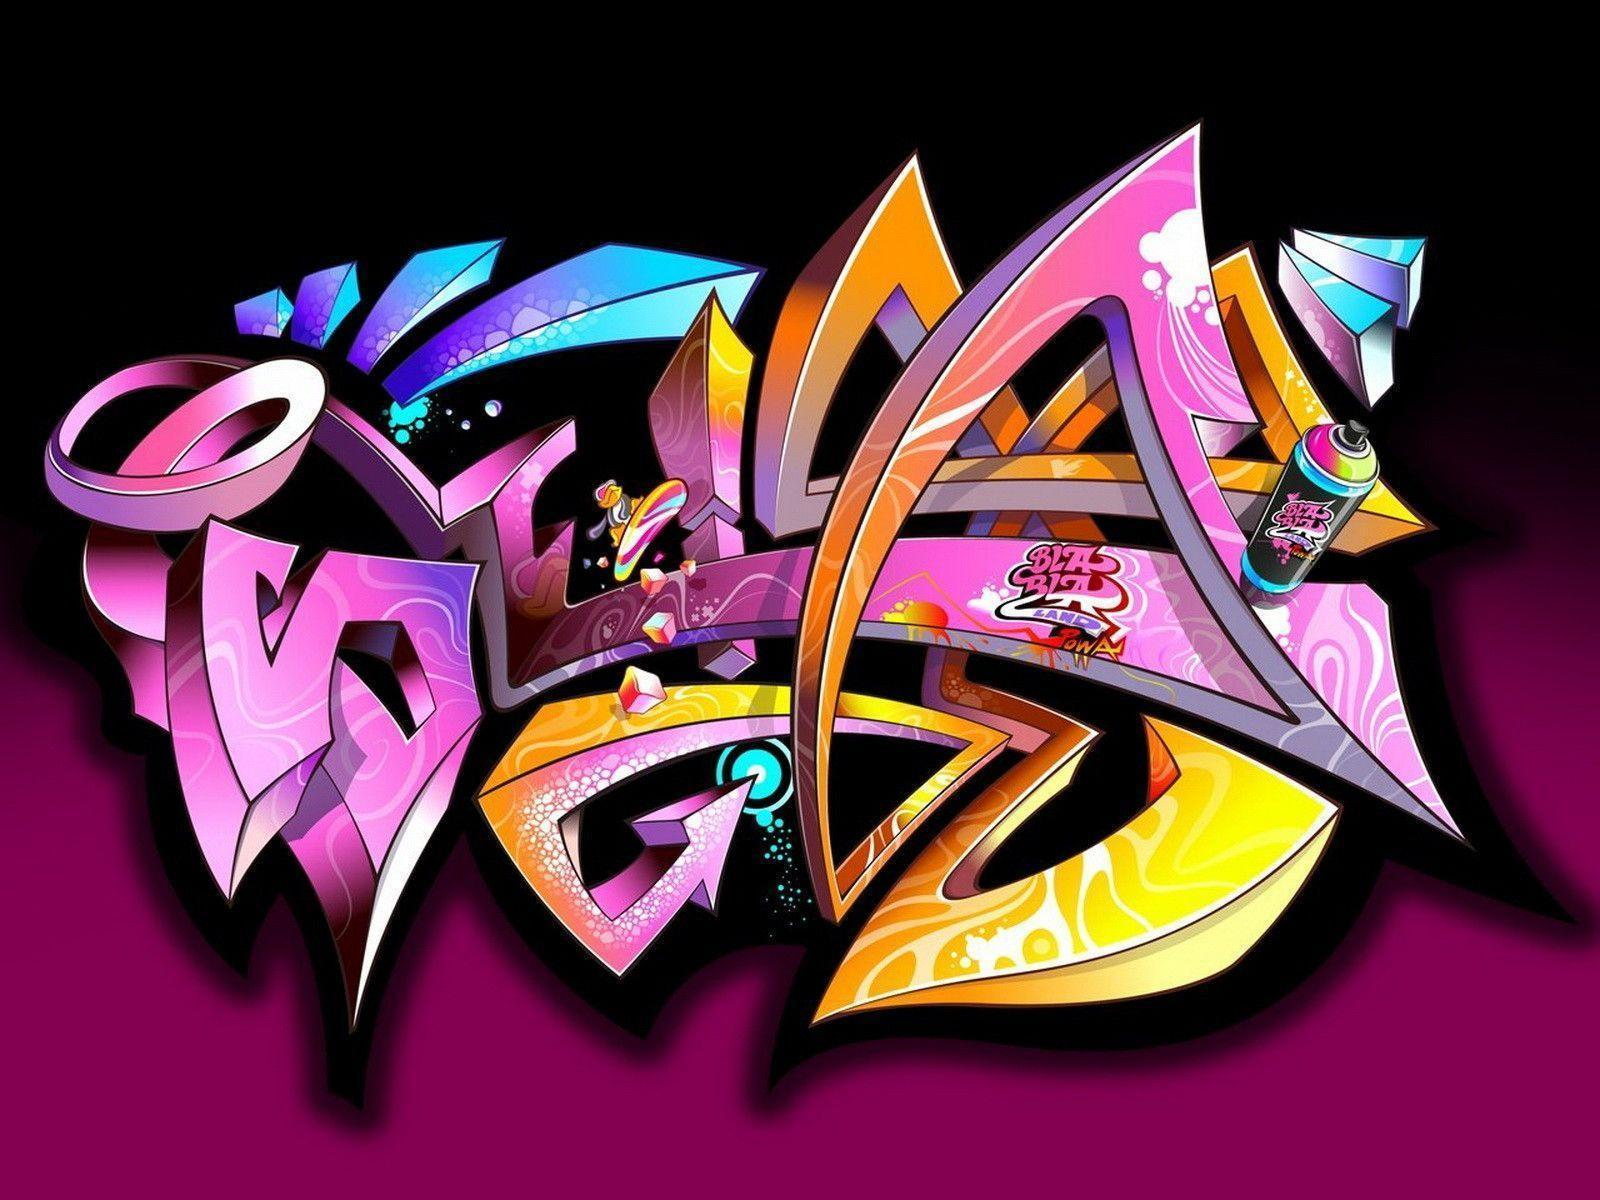 Graffiti Desktop Backgrounds Wallpaper Cave